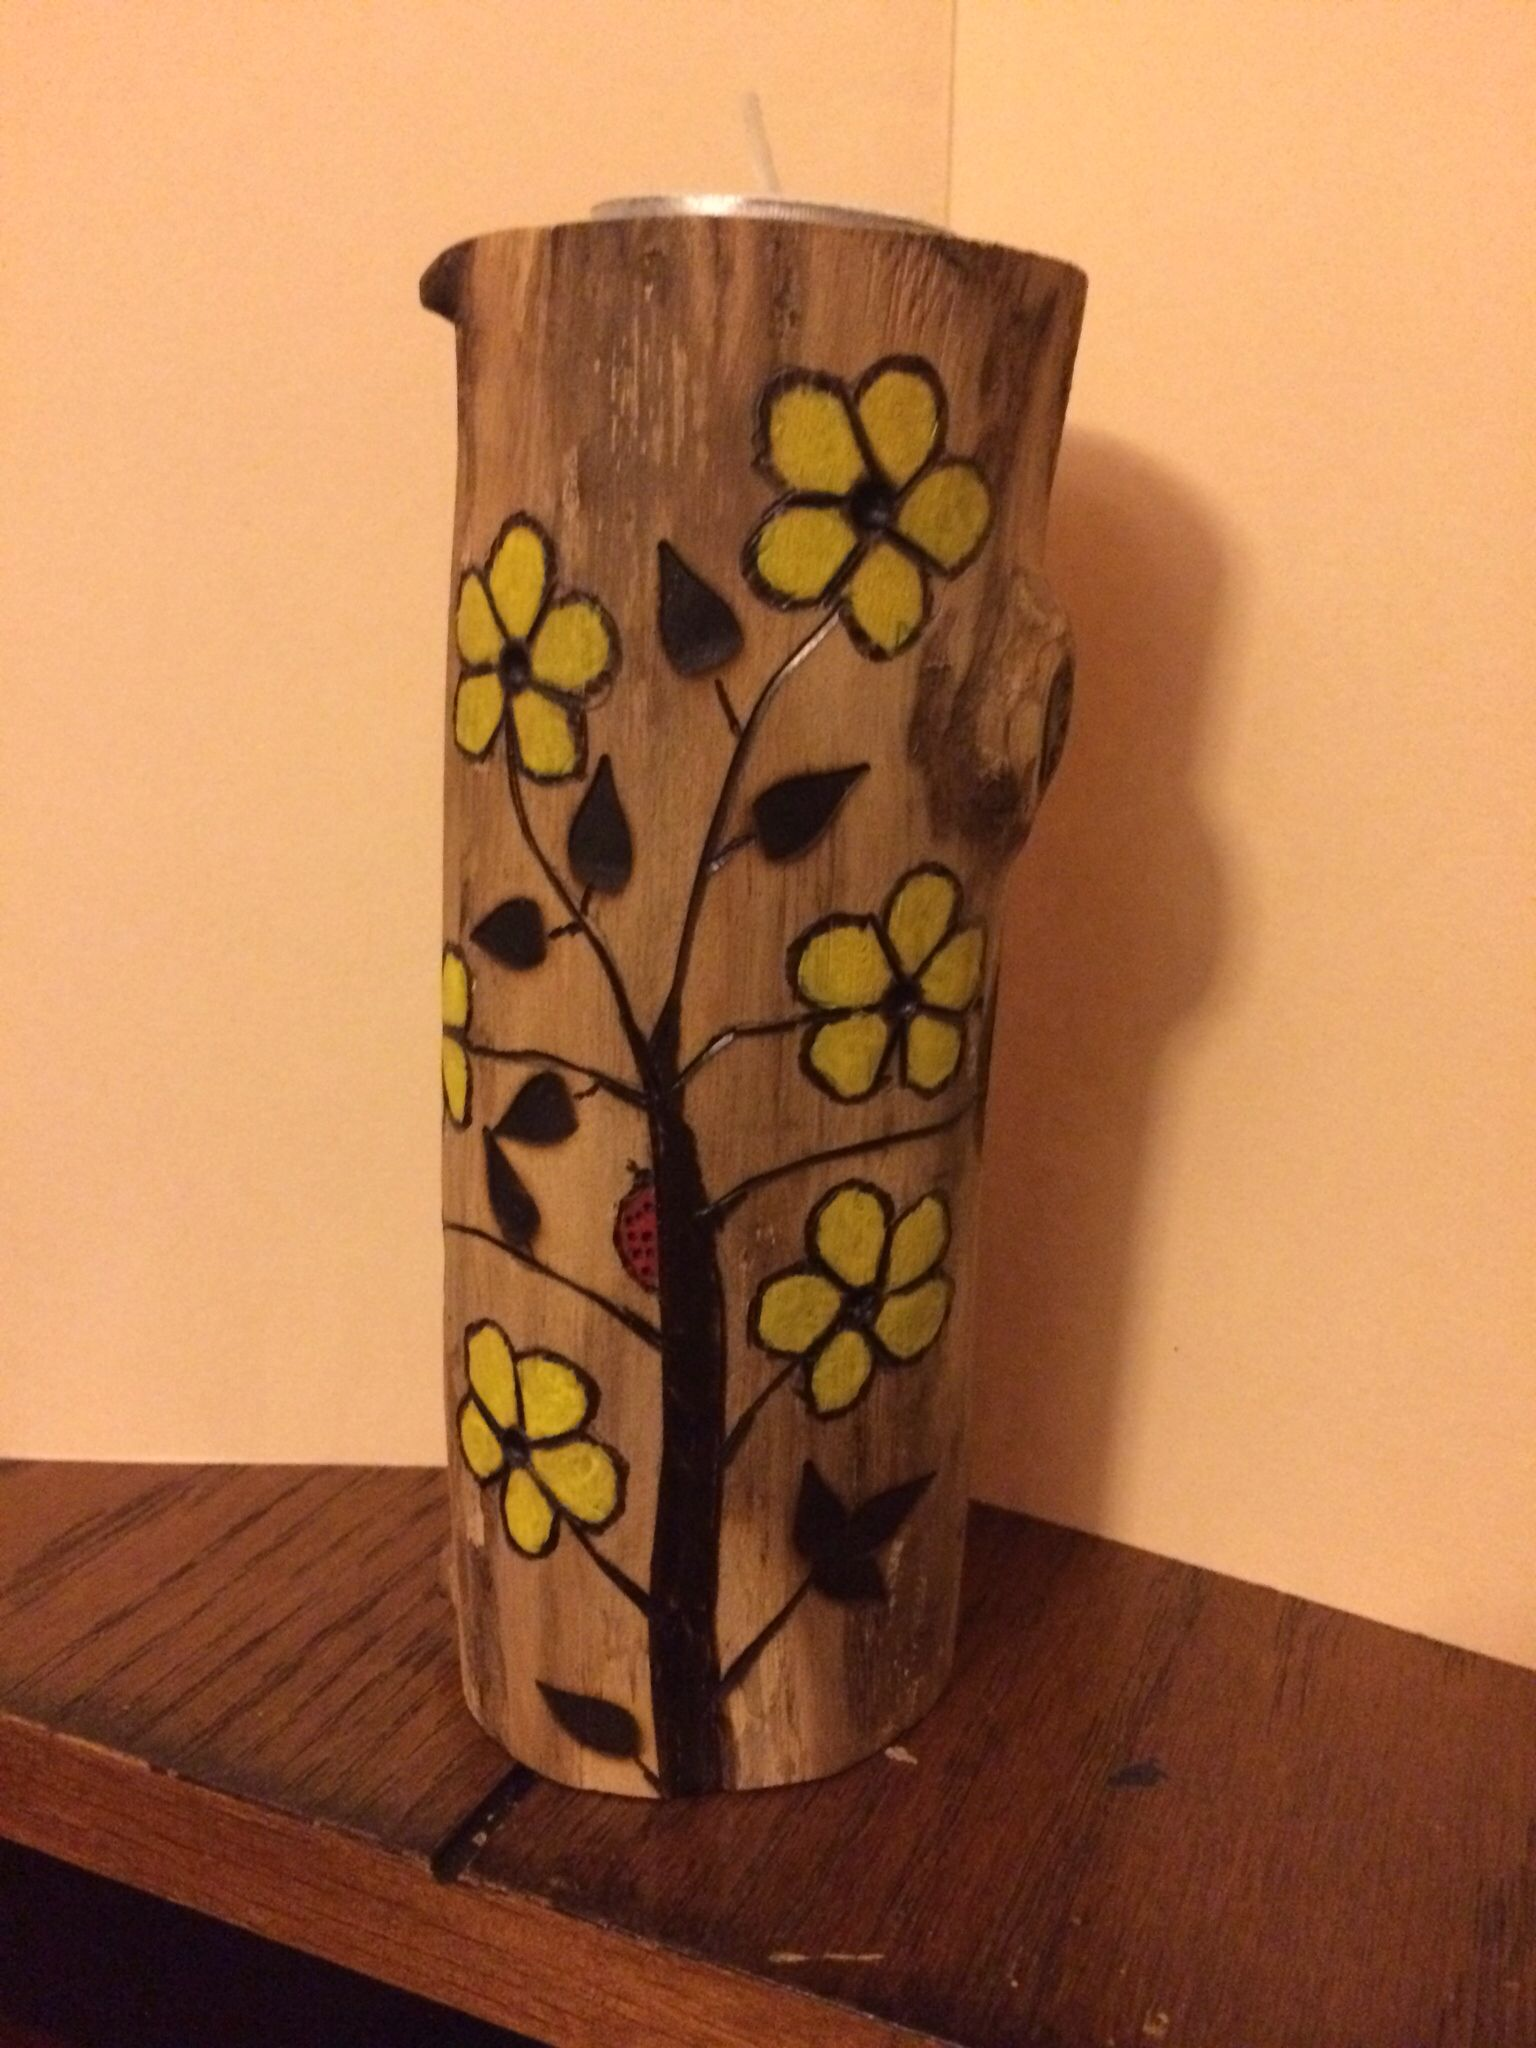 Wooden candle holders crafts - Yellow Flower Candle Holder Wood Burning Pyrography Wood Craft